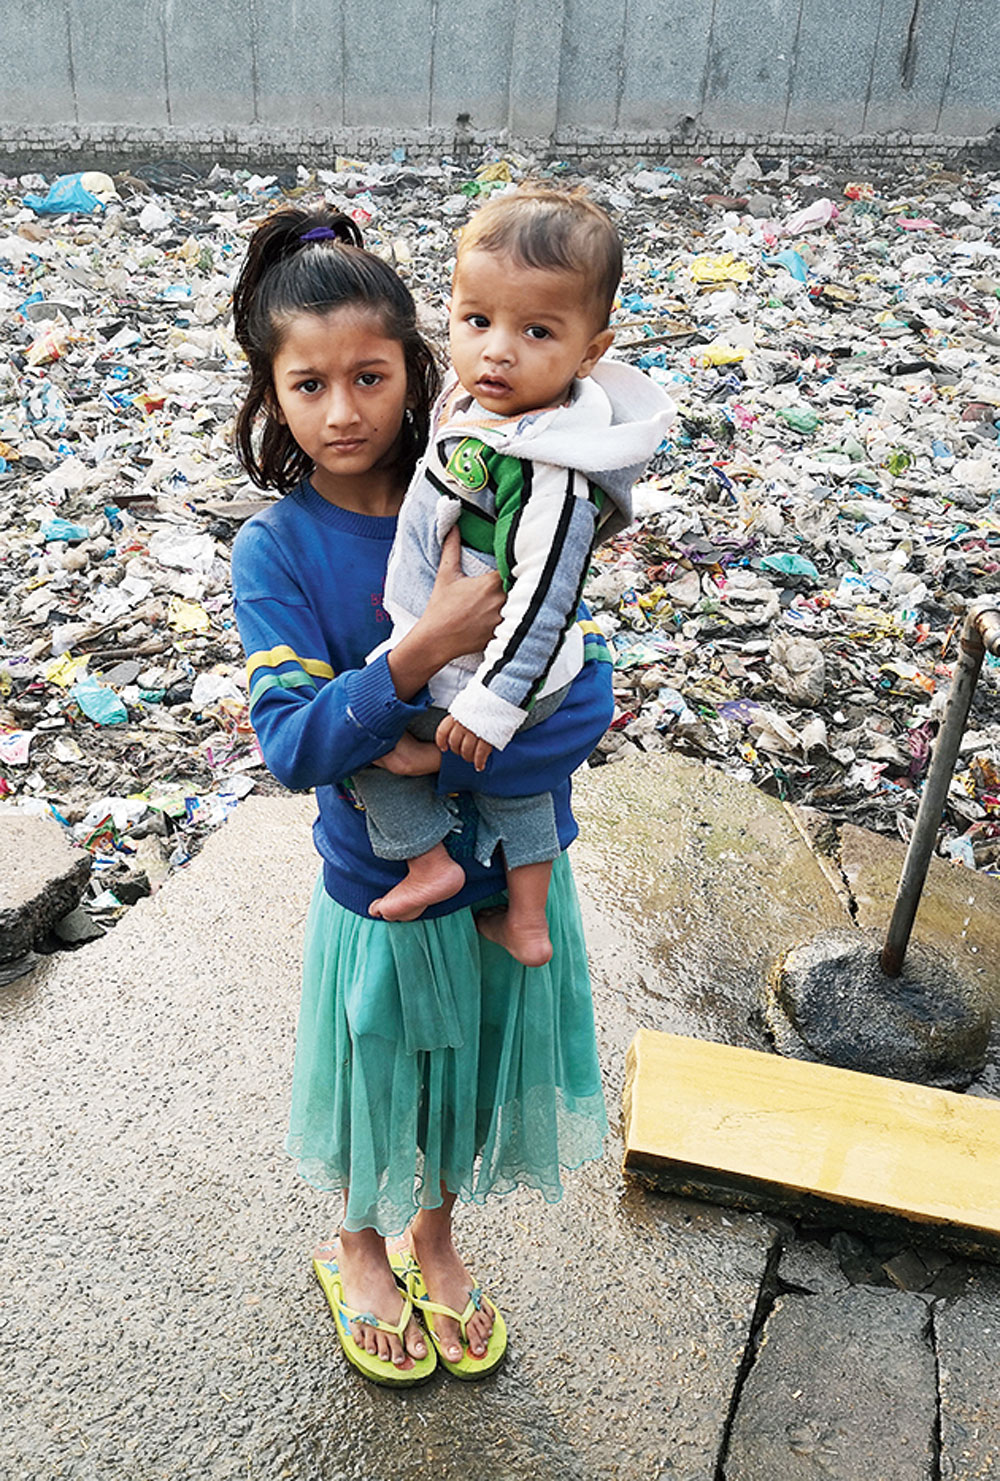 Photographs from the landfill series show children and adults standing against mountains of filth